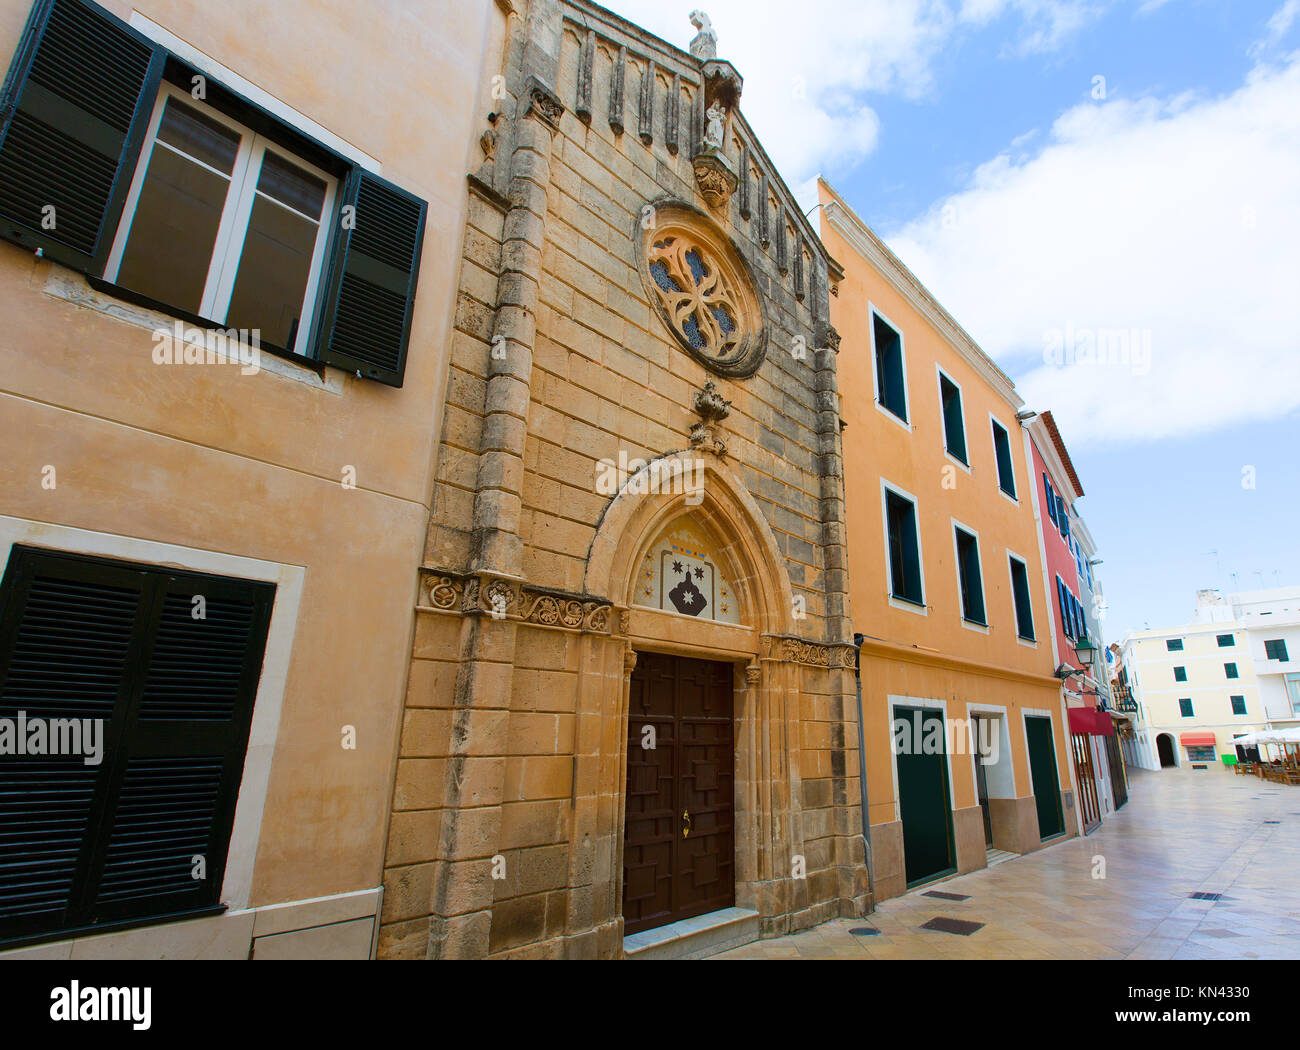 Ciutadella Menorca carrer Mao church downtown in Ciudadela Balearic Islands. - Stock Image